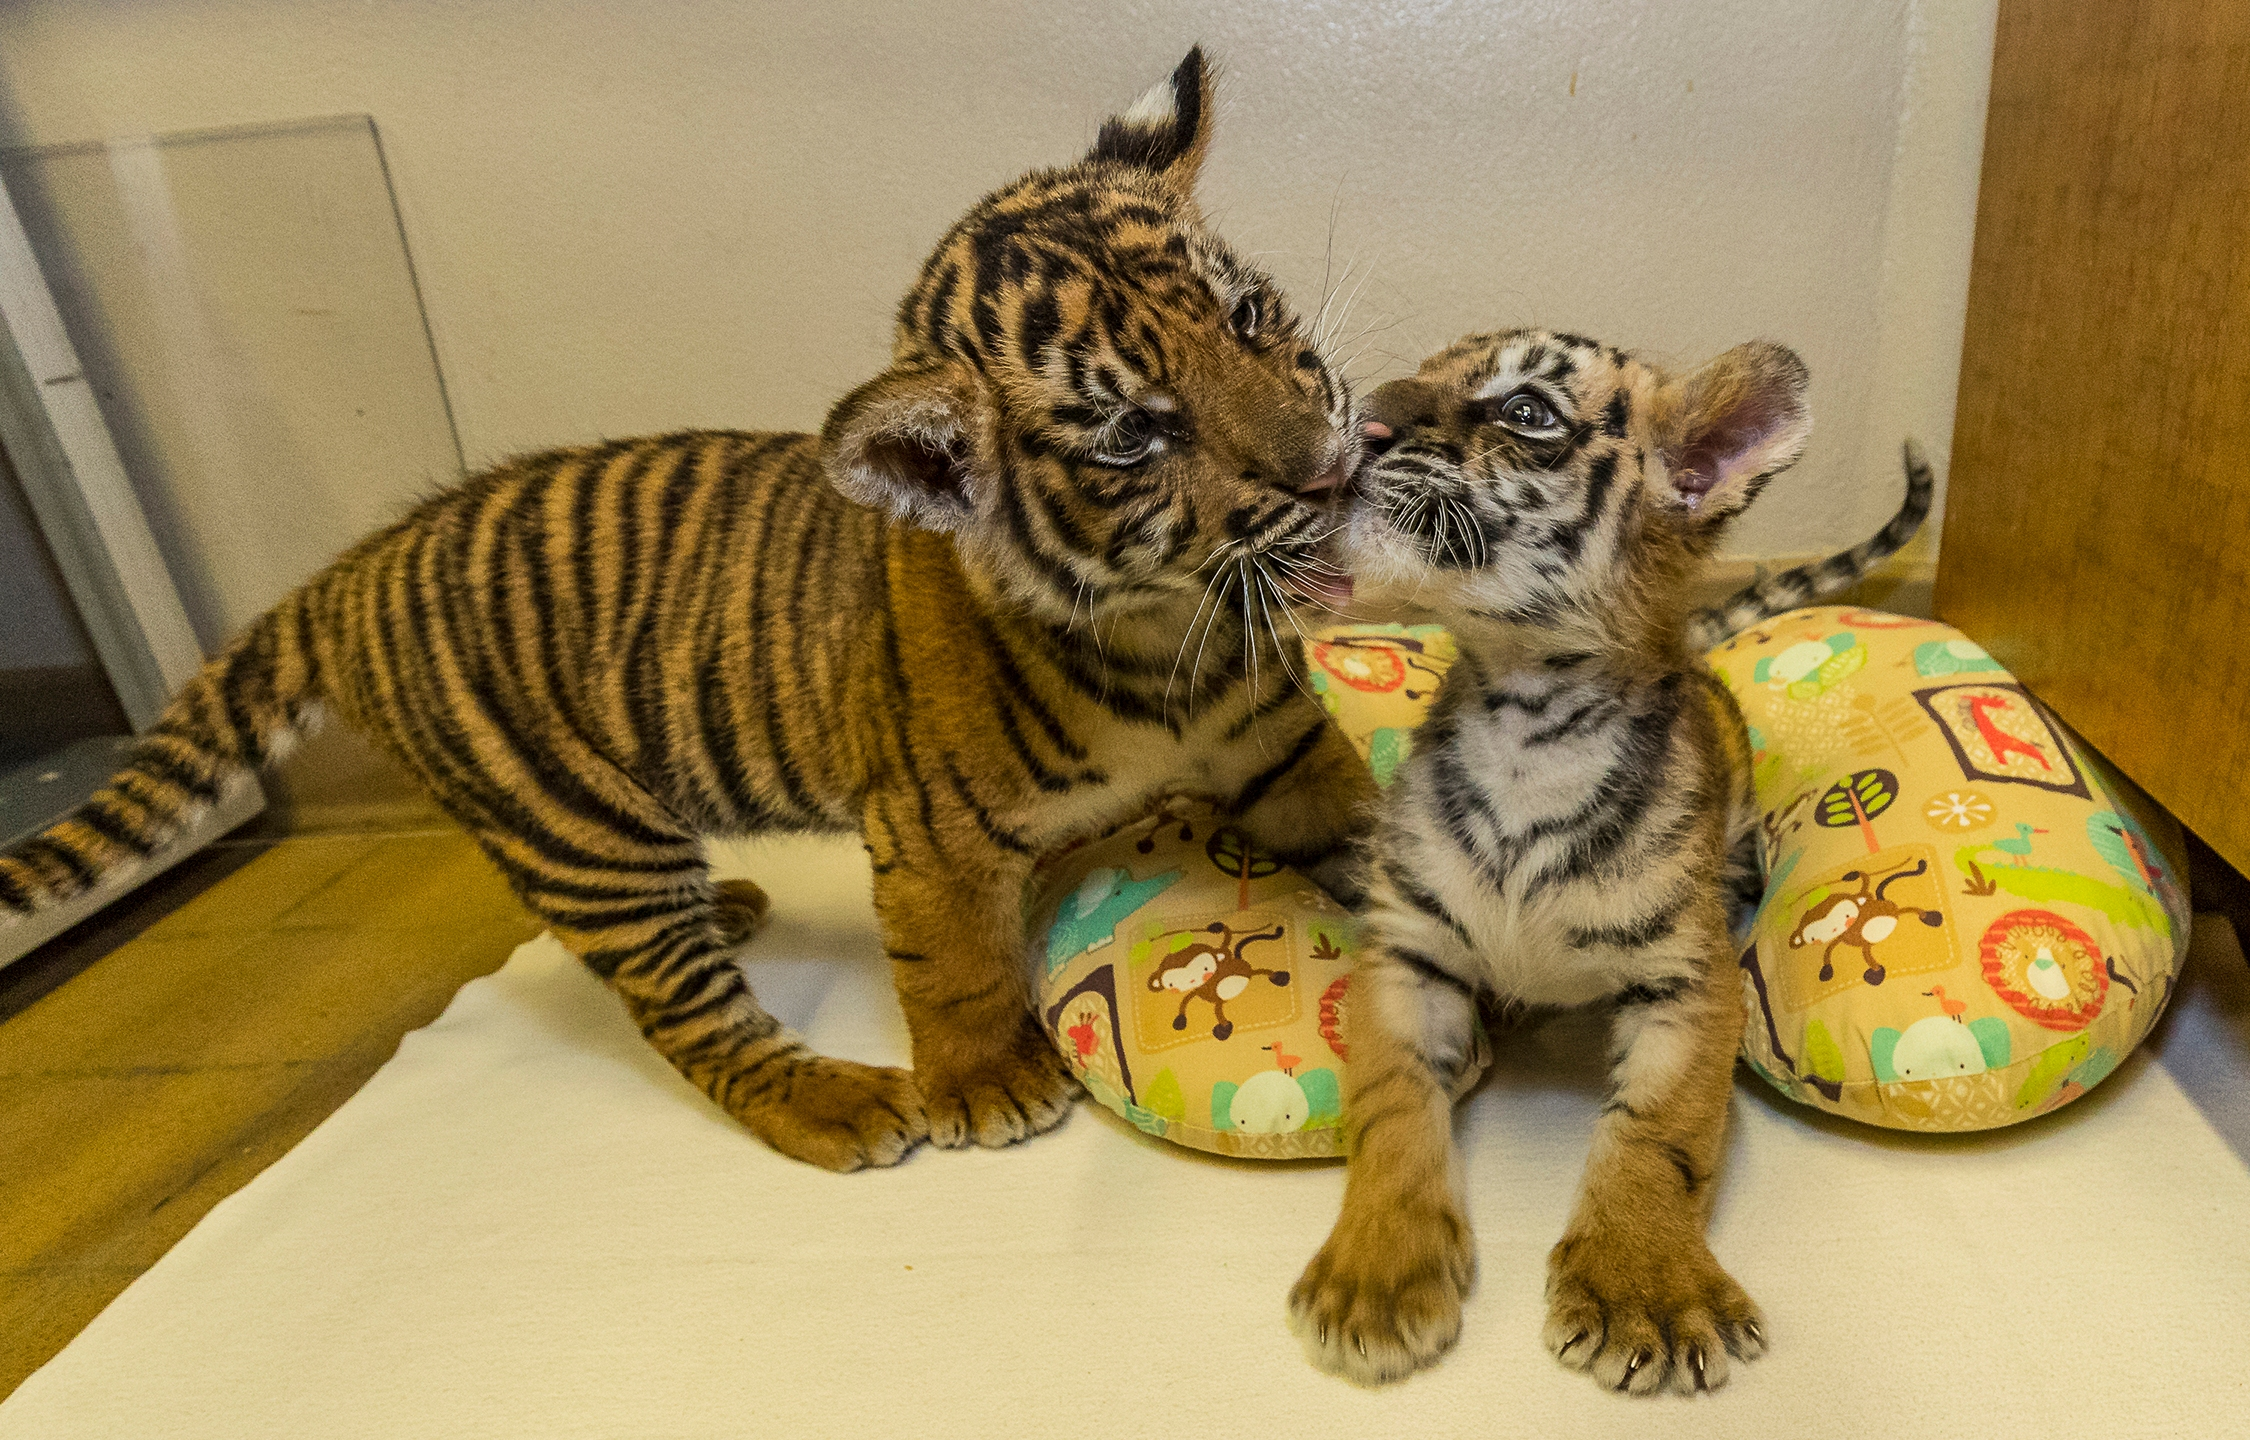 A 9-week-old Sumatran tiger cub, left, greets an approximately 7-week-old Bengal tiger cub at the San Diego Zoo Safari Park's Ione and Paul Harter Animal Care Center Sept. 11, 2017. (Credit: Christina Simmons / San Diego Zoo Safari Park)